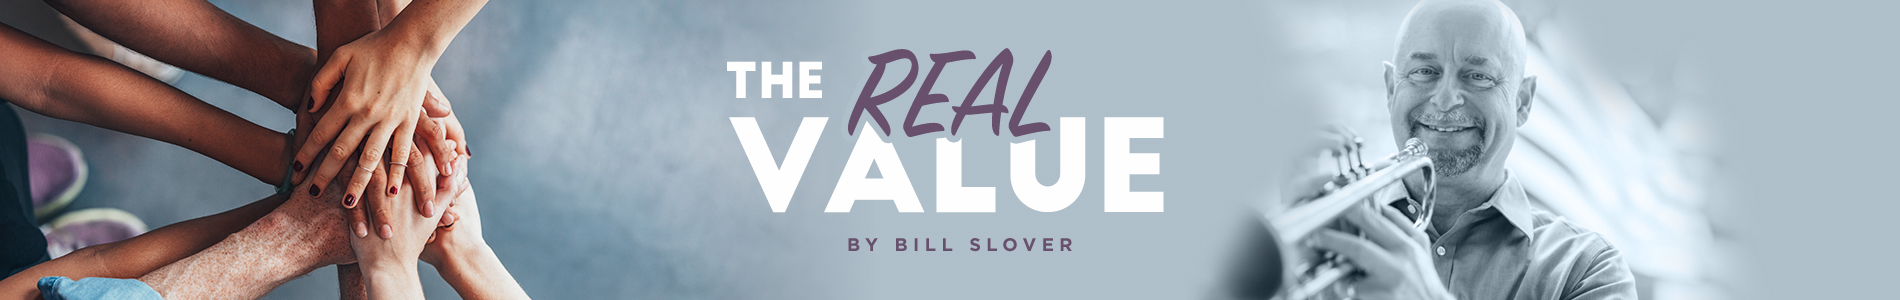 realvalue blogheader